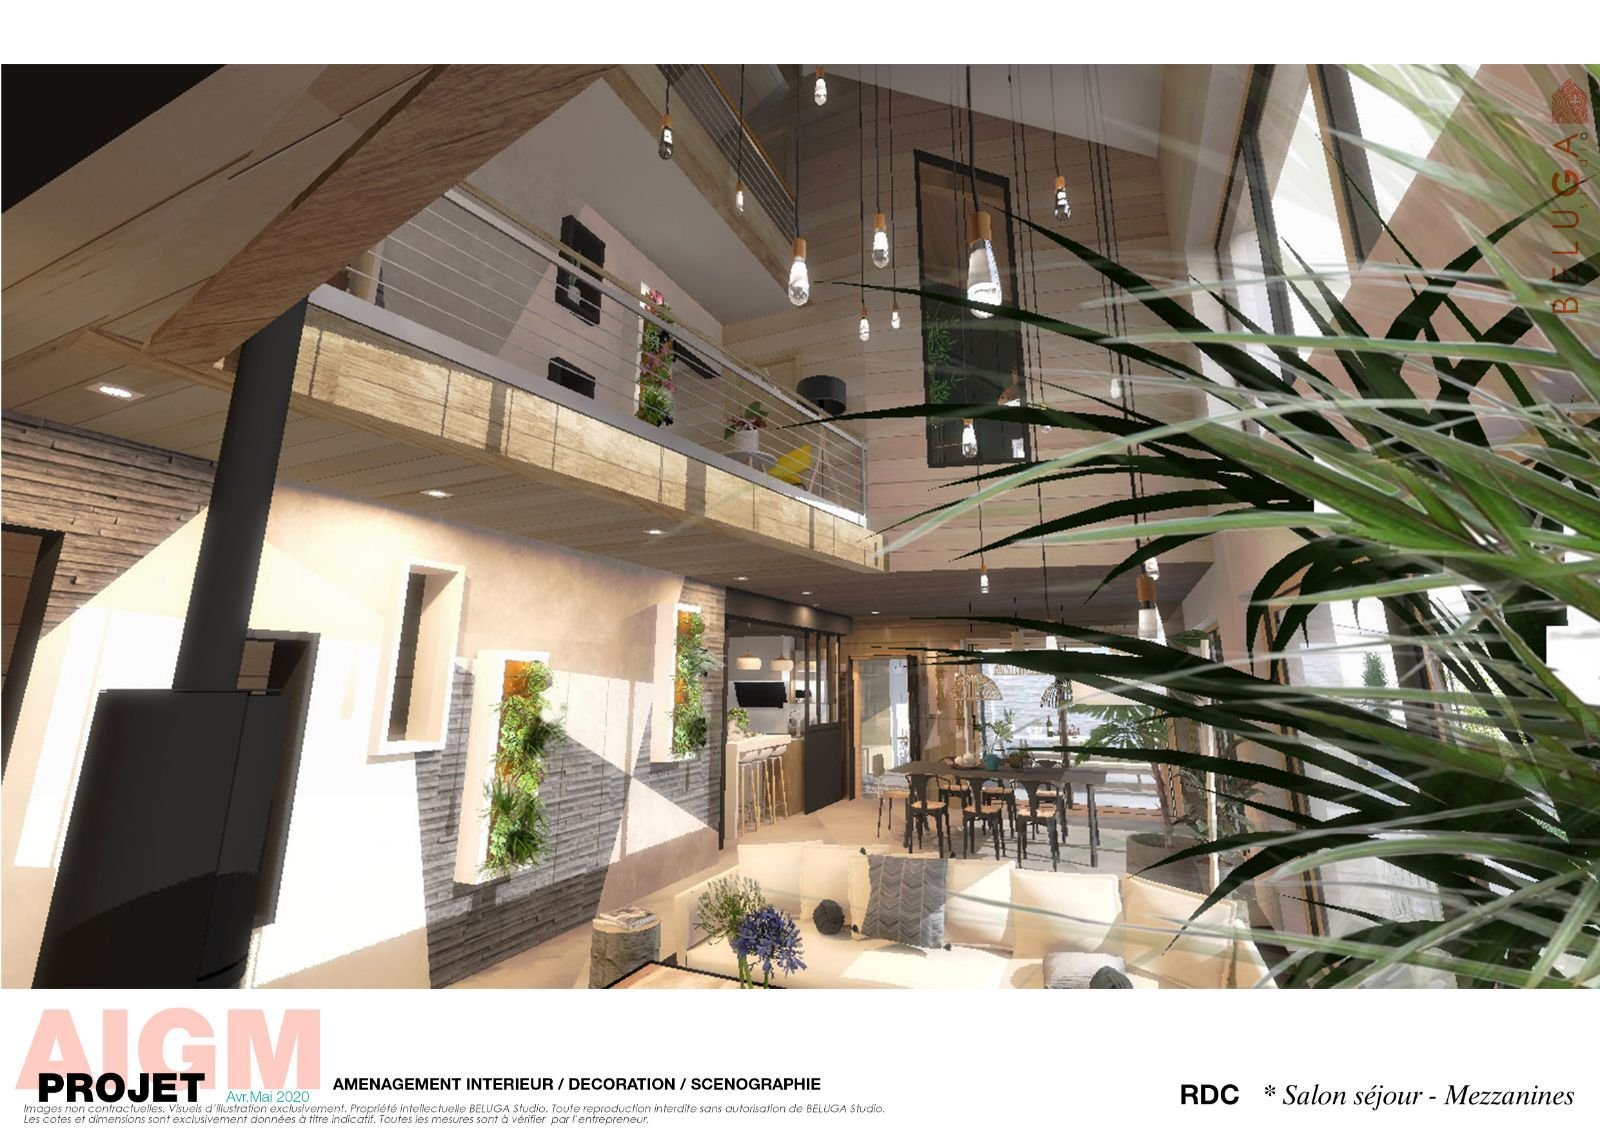 Aigm - amenagement Interieur